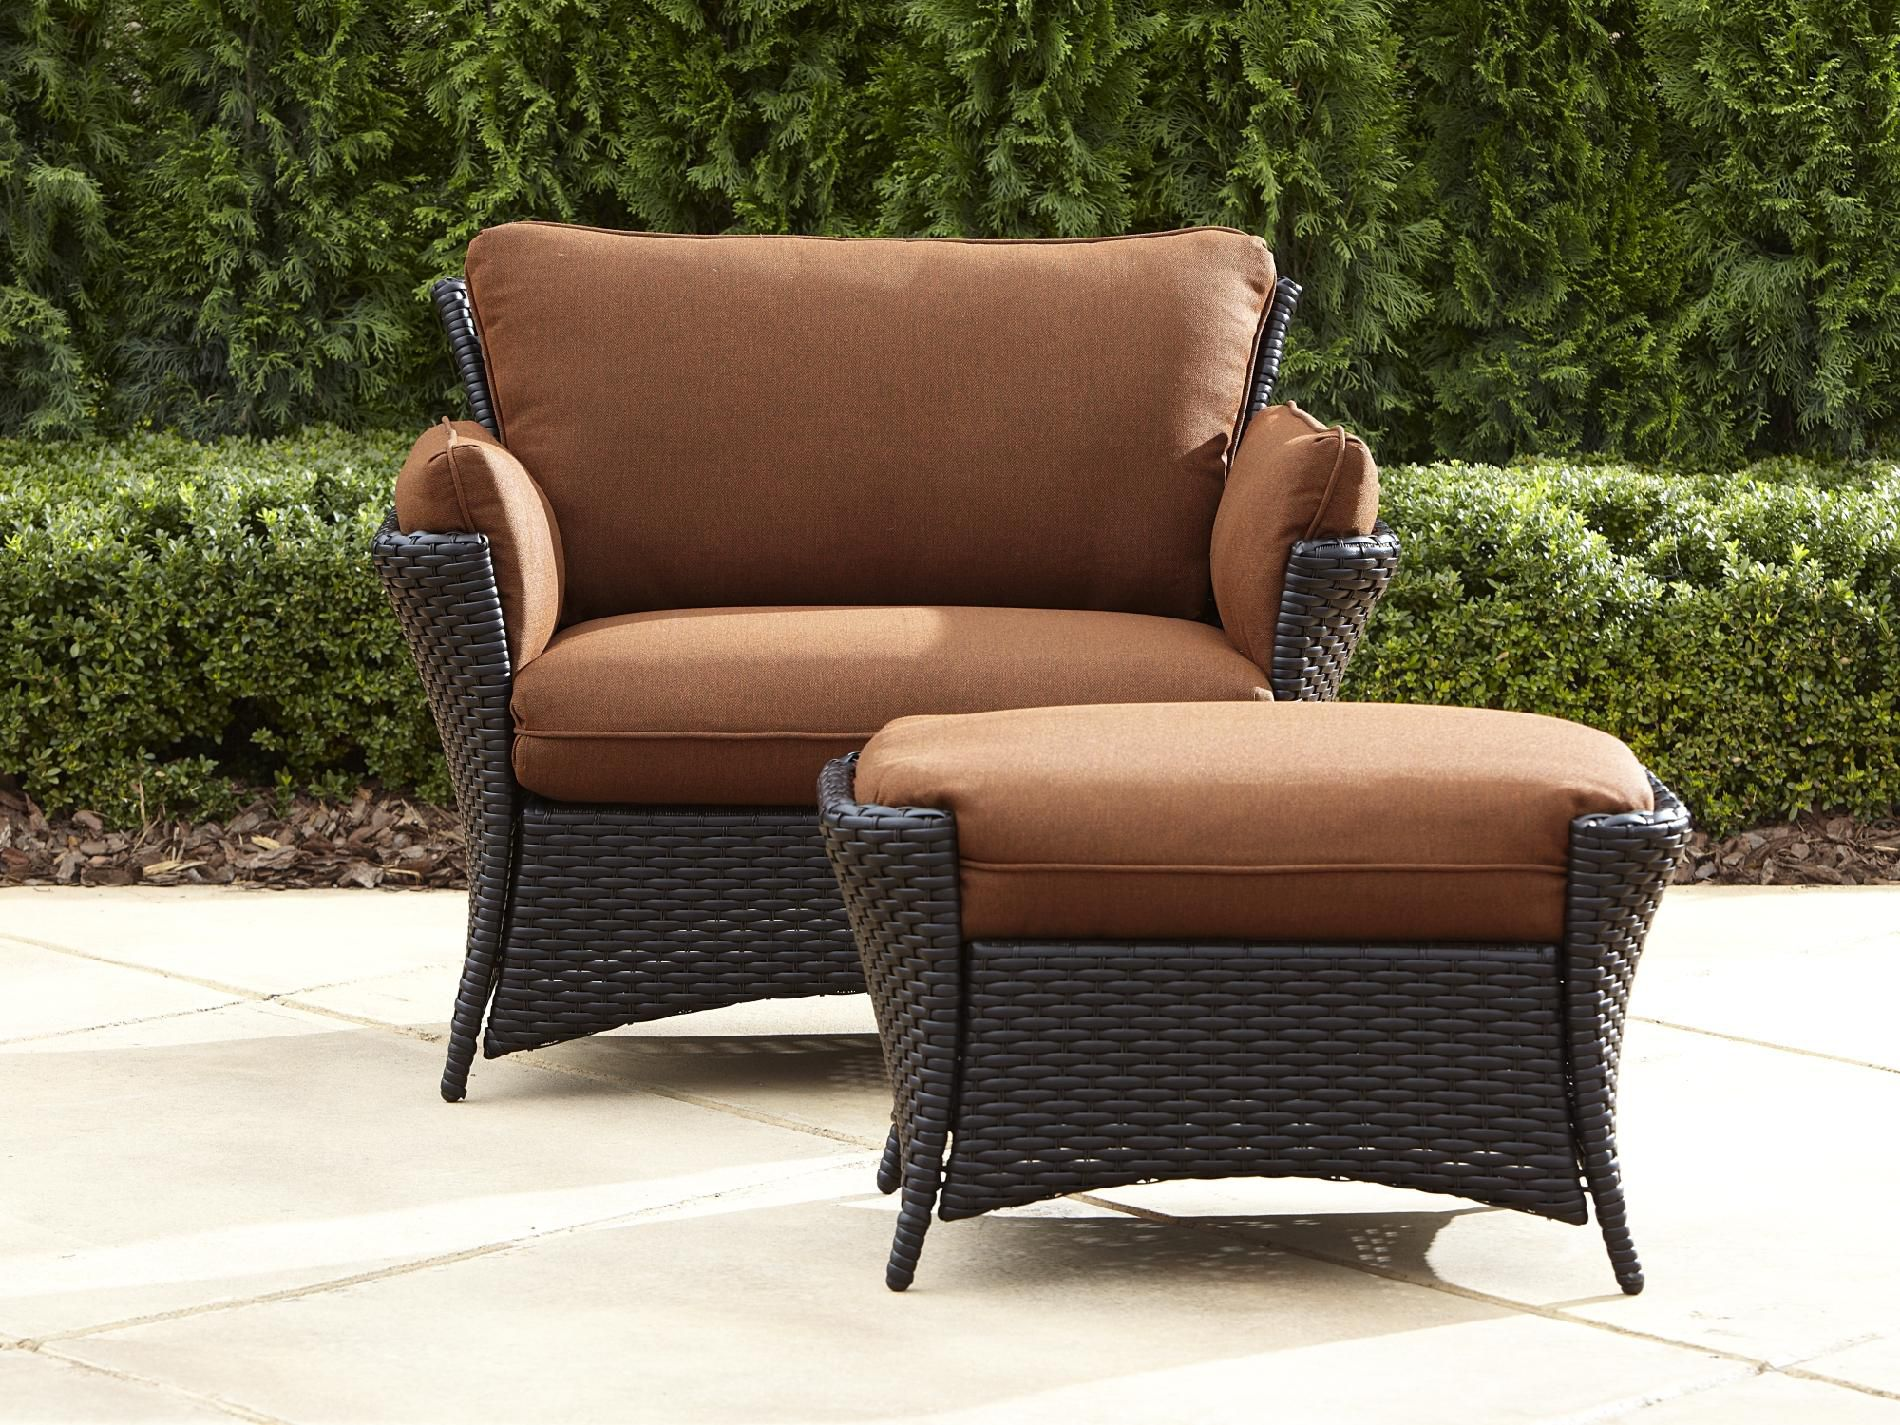 Reclining Outdoor Chair With Ottoman. Chaise Lounges